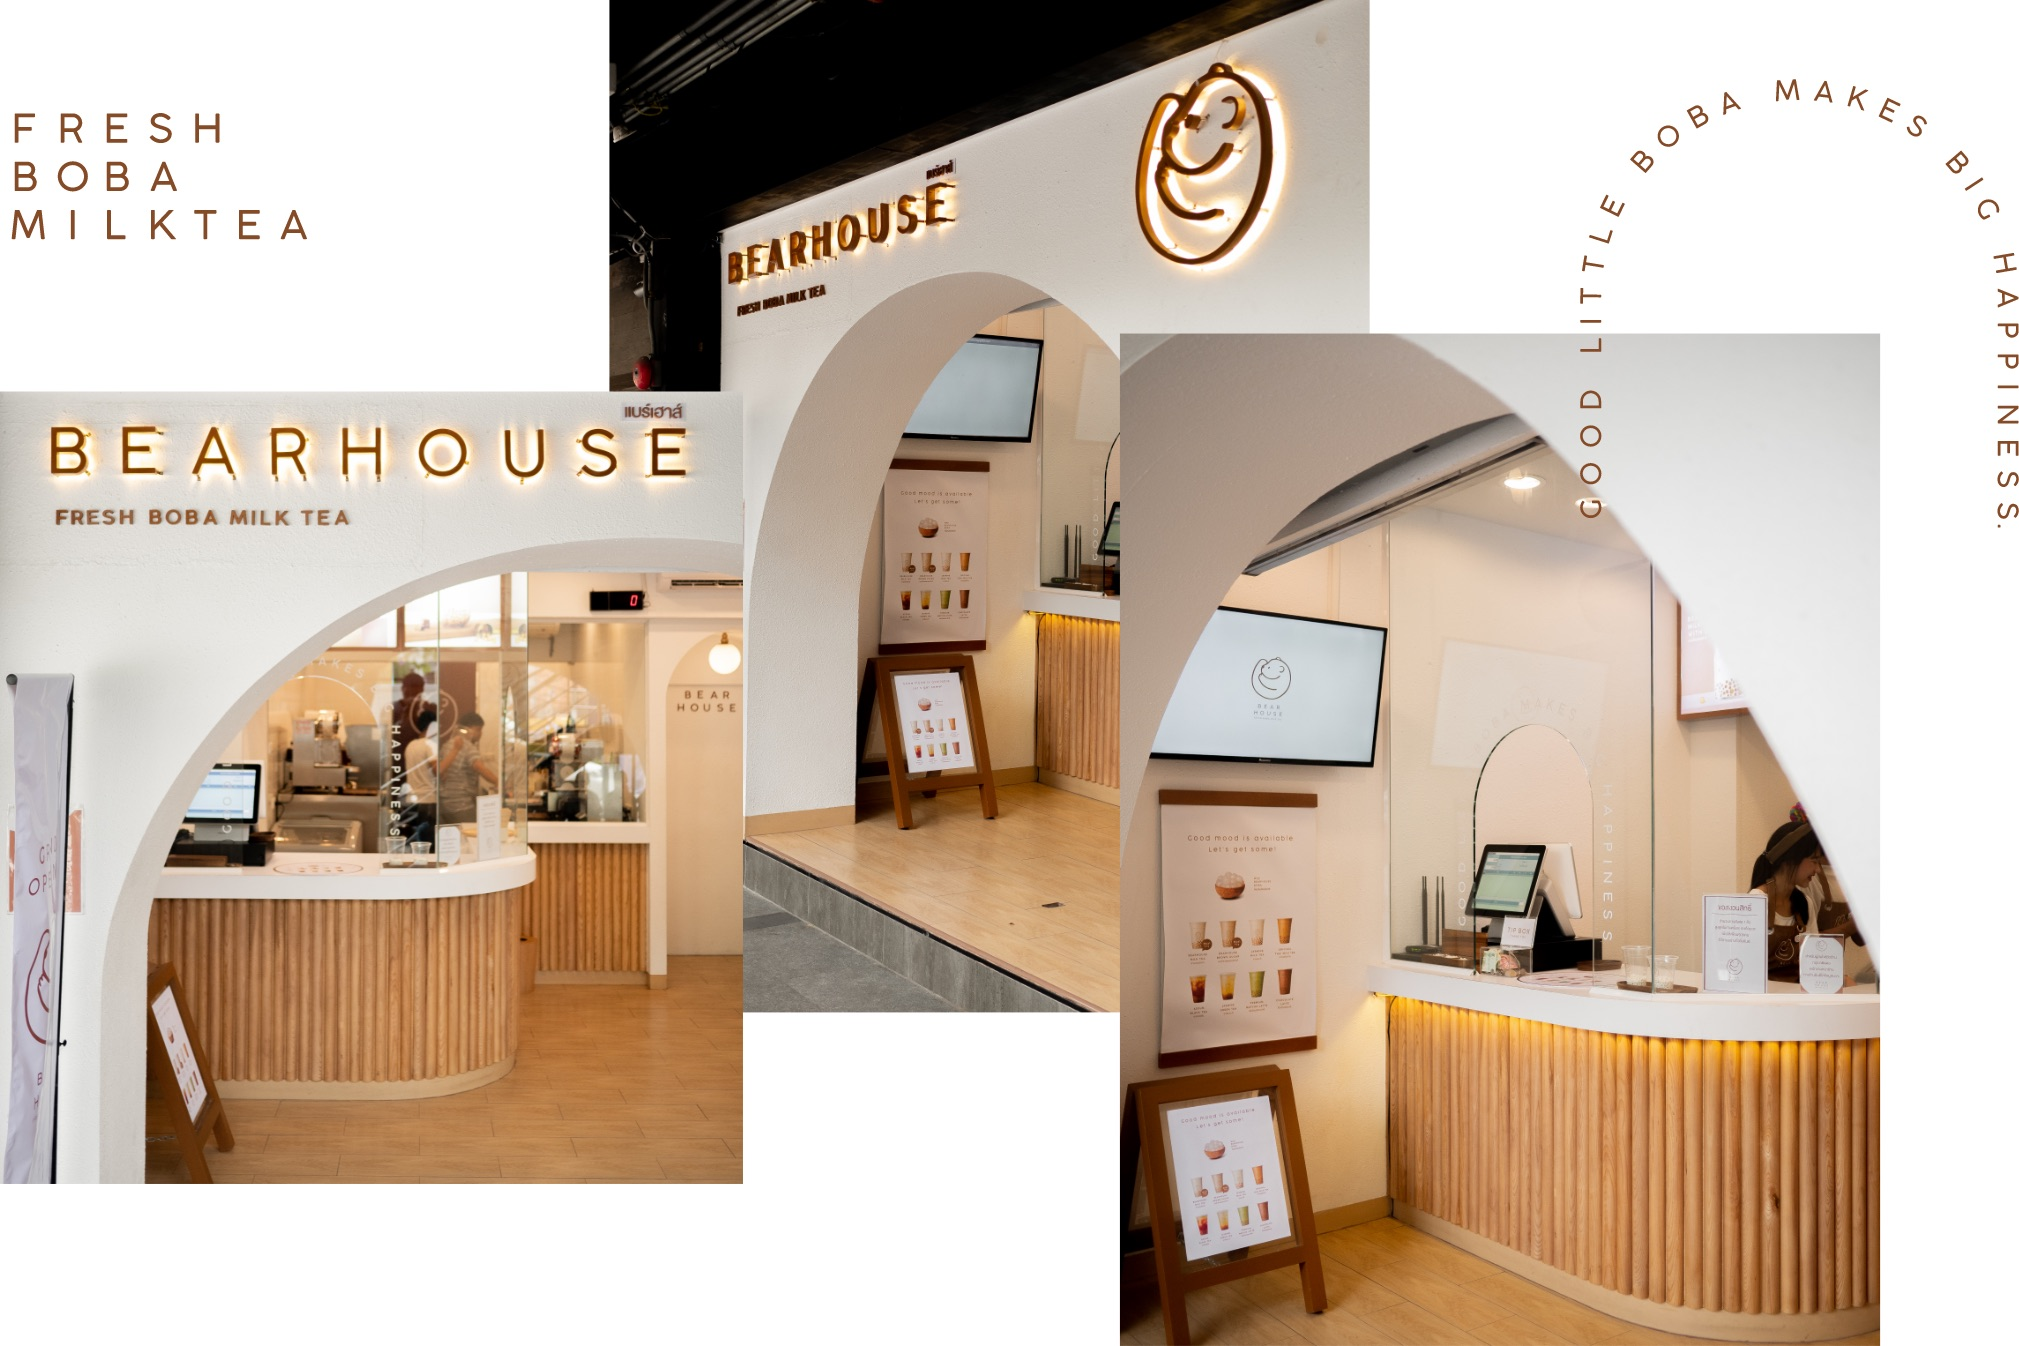 Bearhouse yindee design15